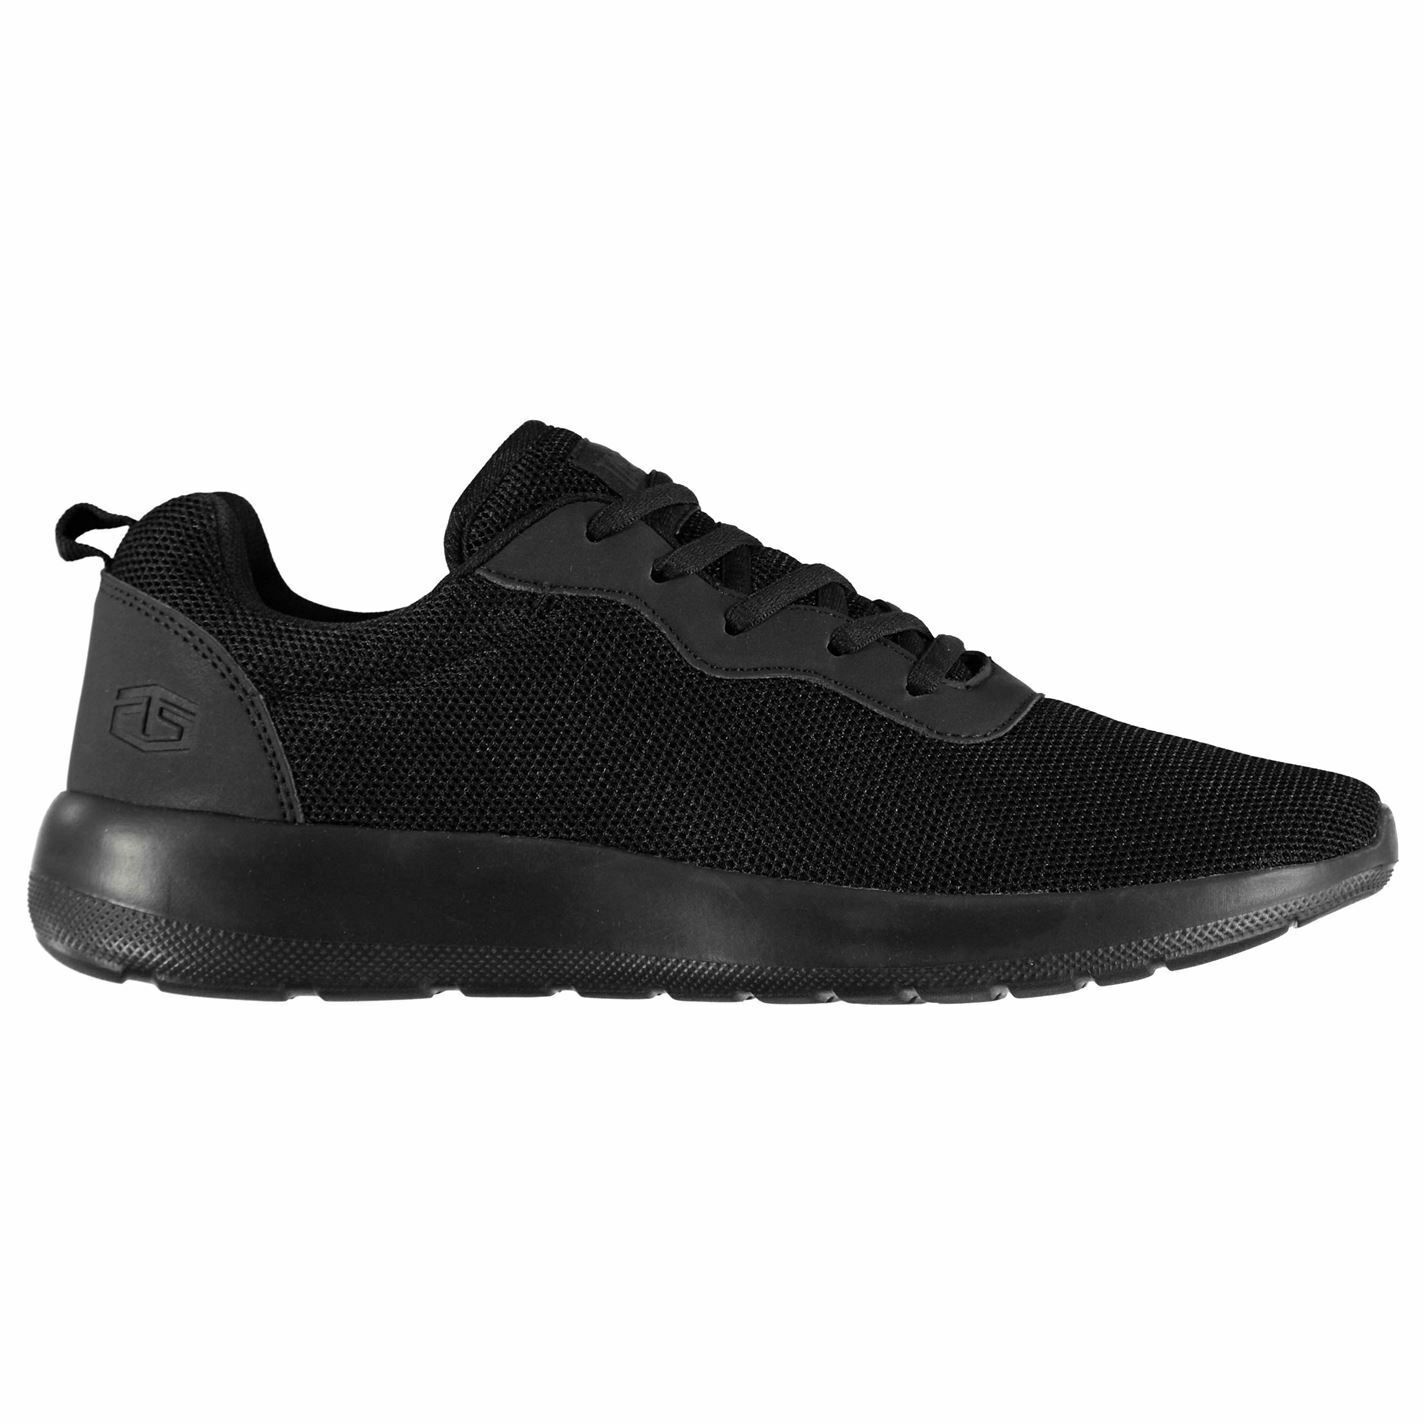 Tapout Mens Clio Run Trainers Athletic Training shoes Sneakers Sport Footwear